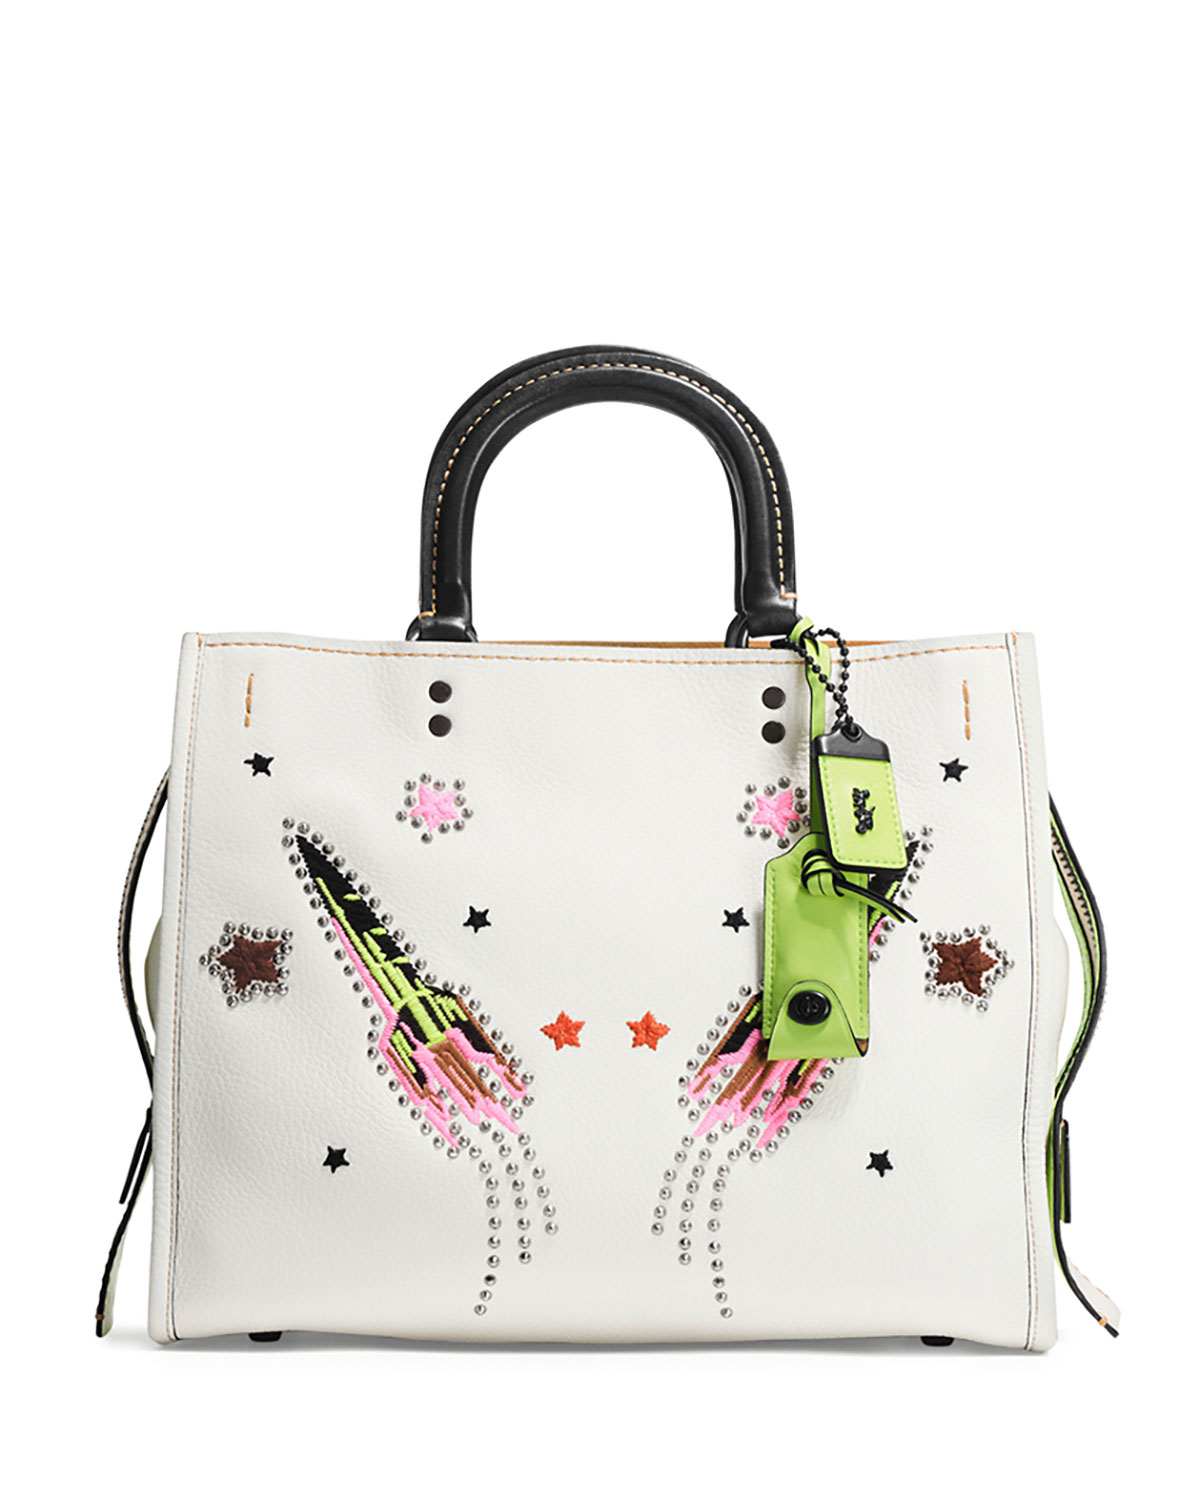 Rogue Rocket Leather Tote Bag, White